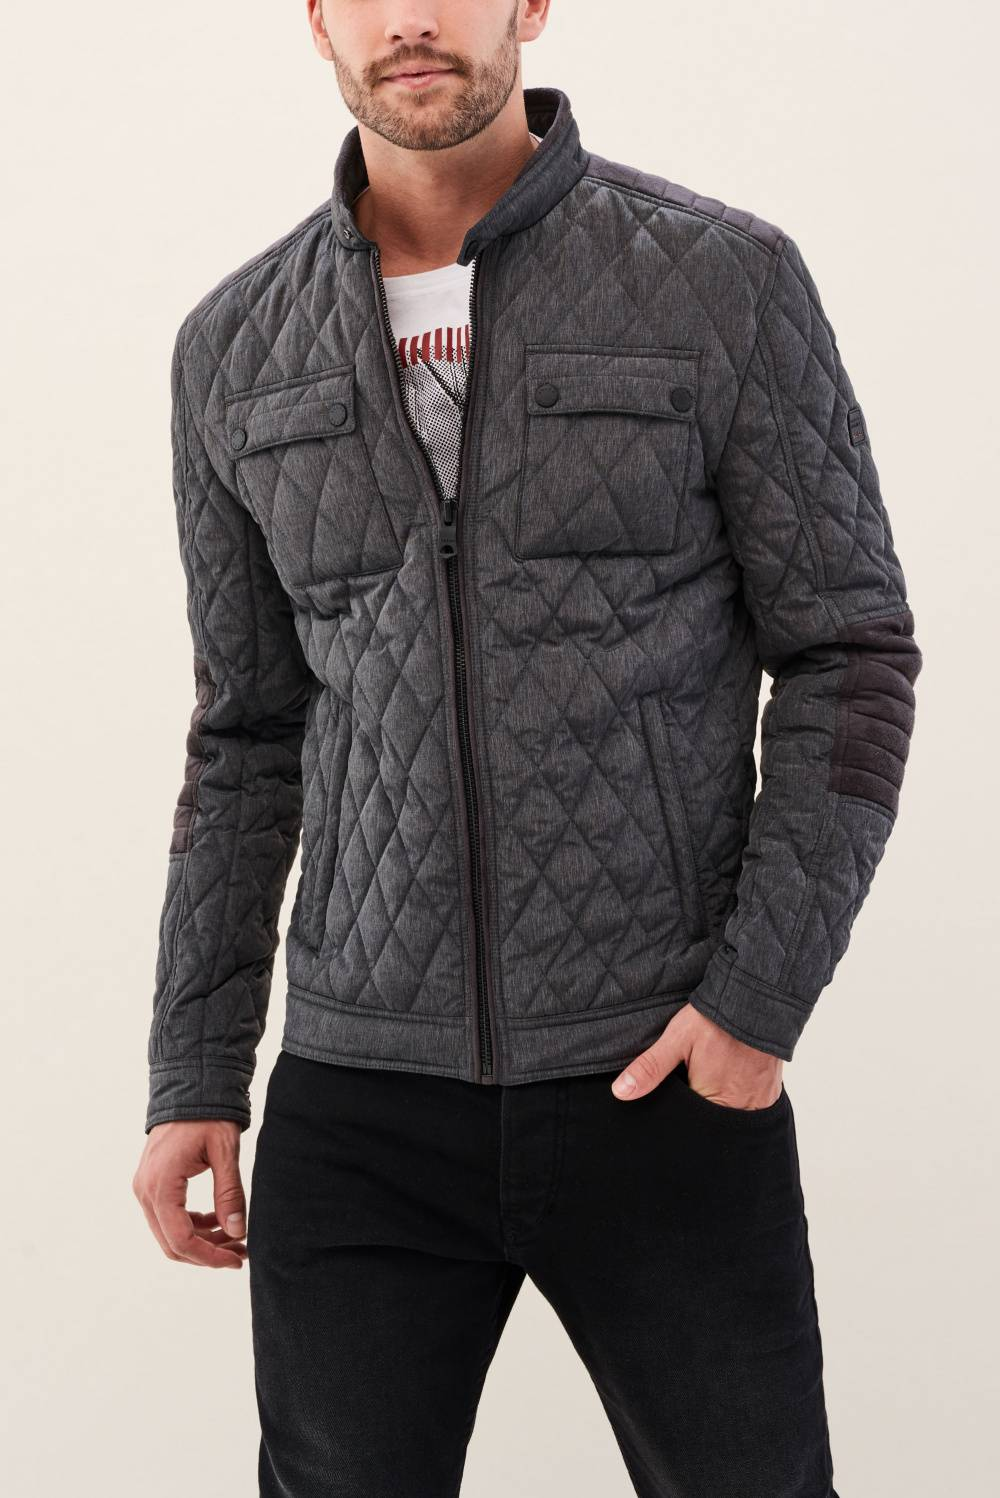 Nylon jacket with details - Salsa